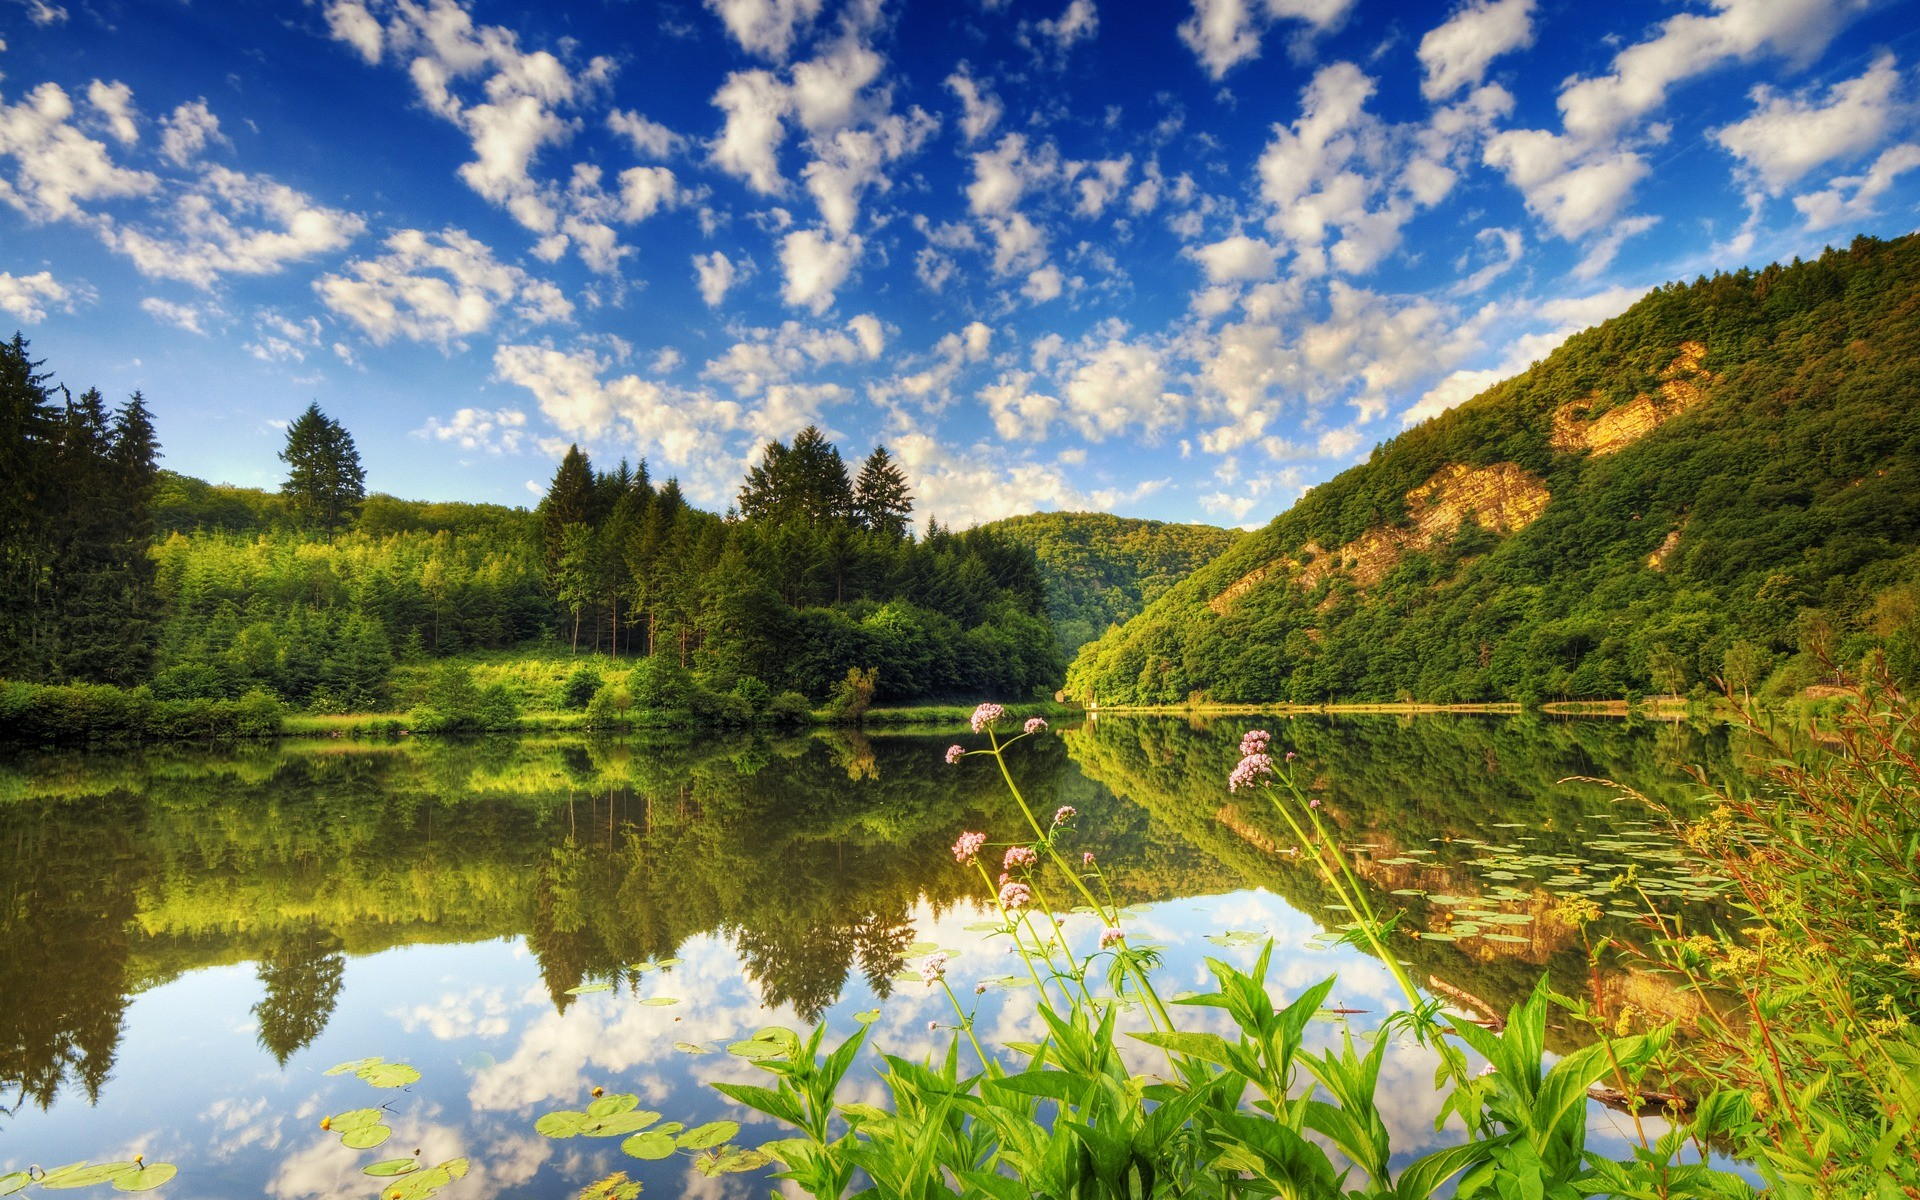 Res: 1920x1200, 1 Beautiful Nature HD Wallpapers Group Beautiful Nature HD Wallpapers Group